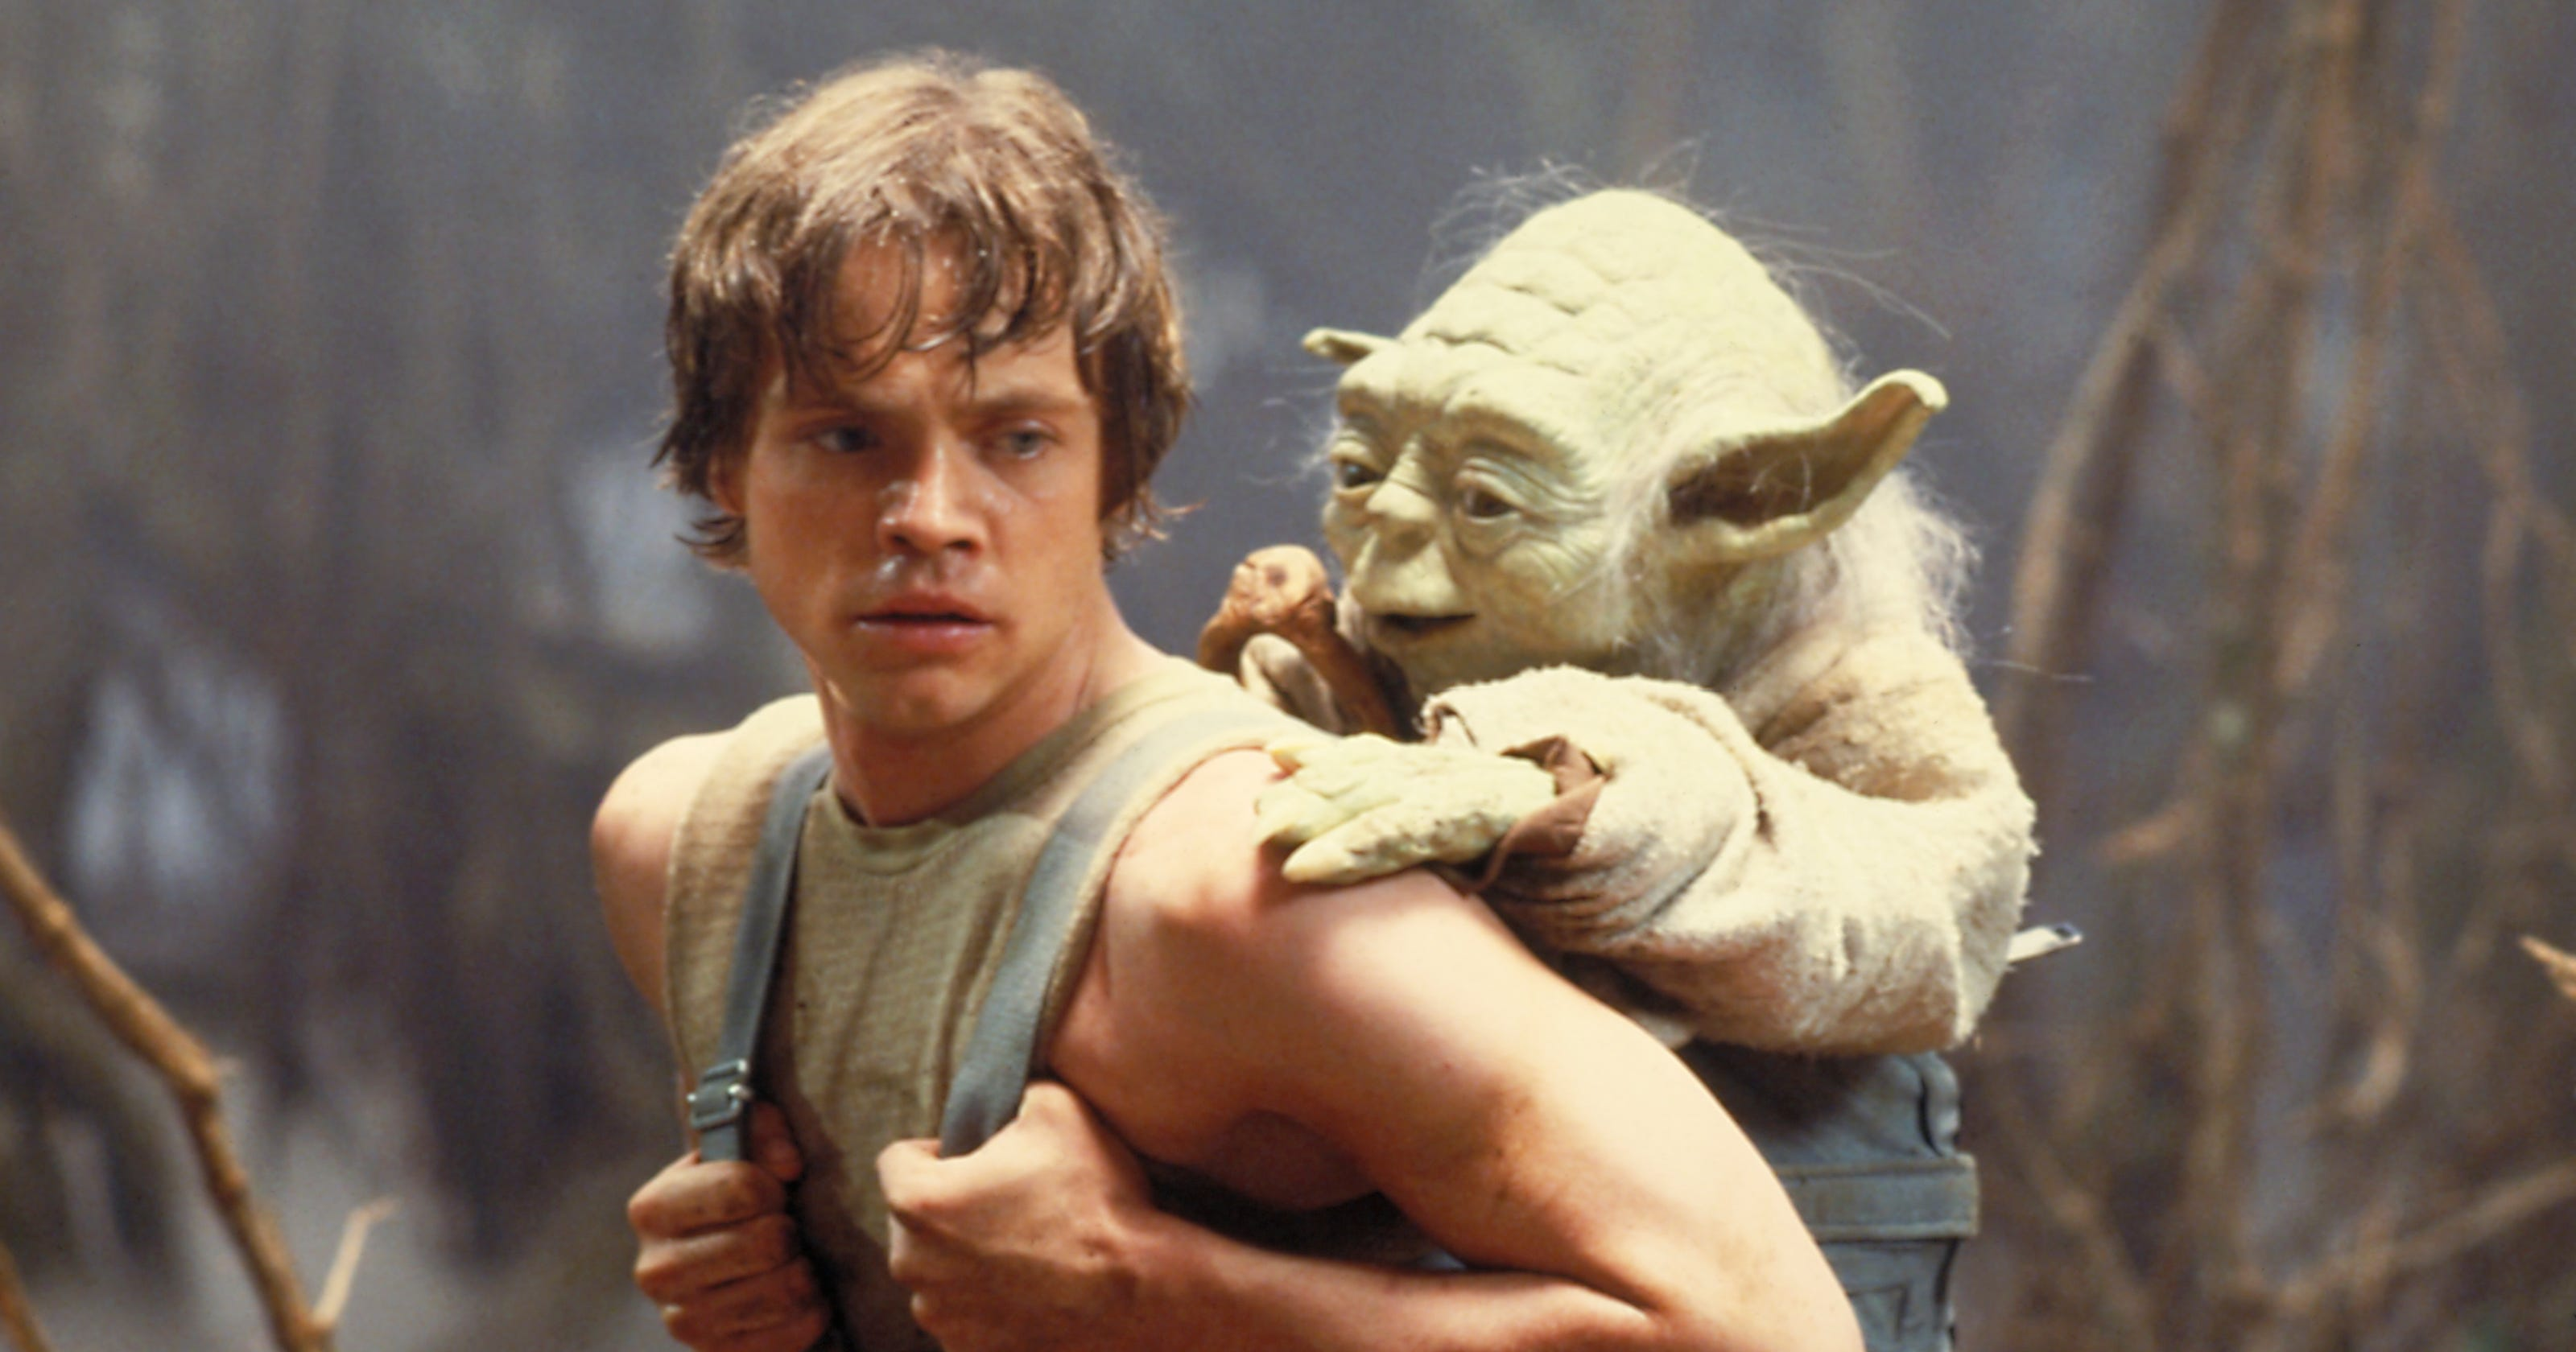 5 Famous Star Wars References Explained